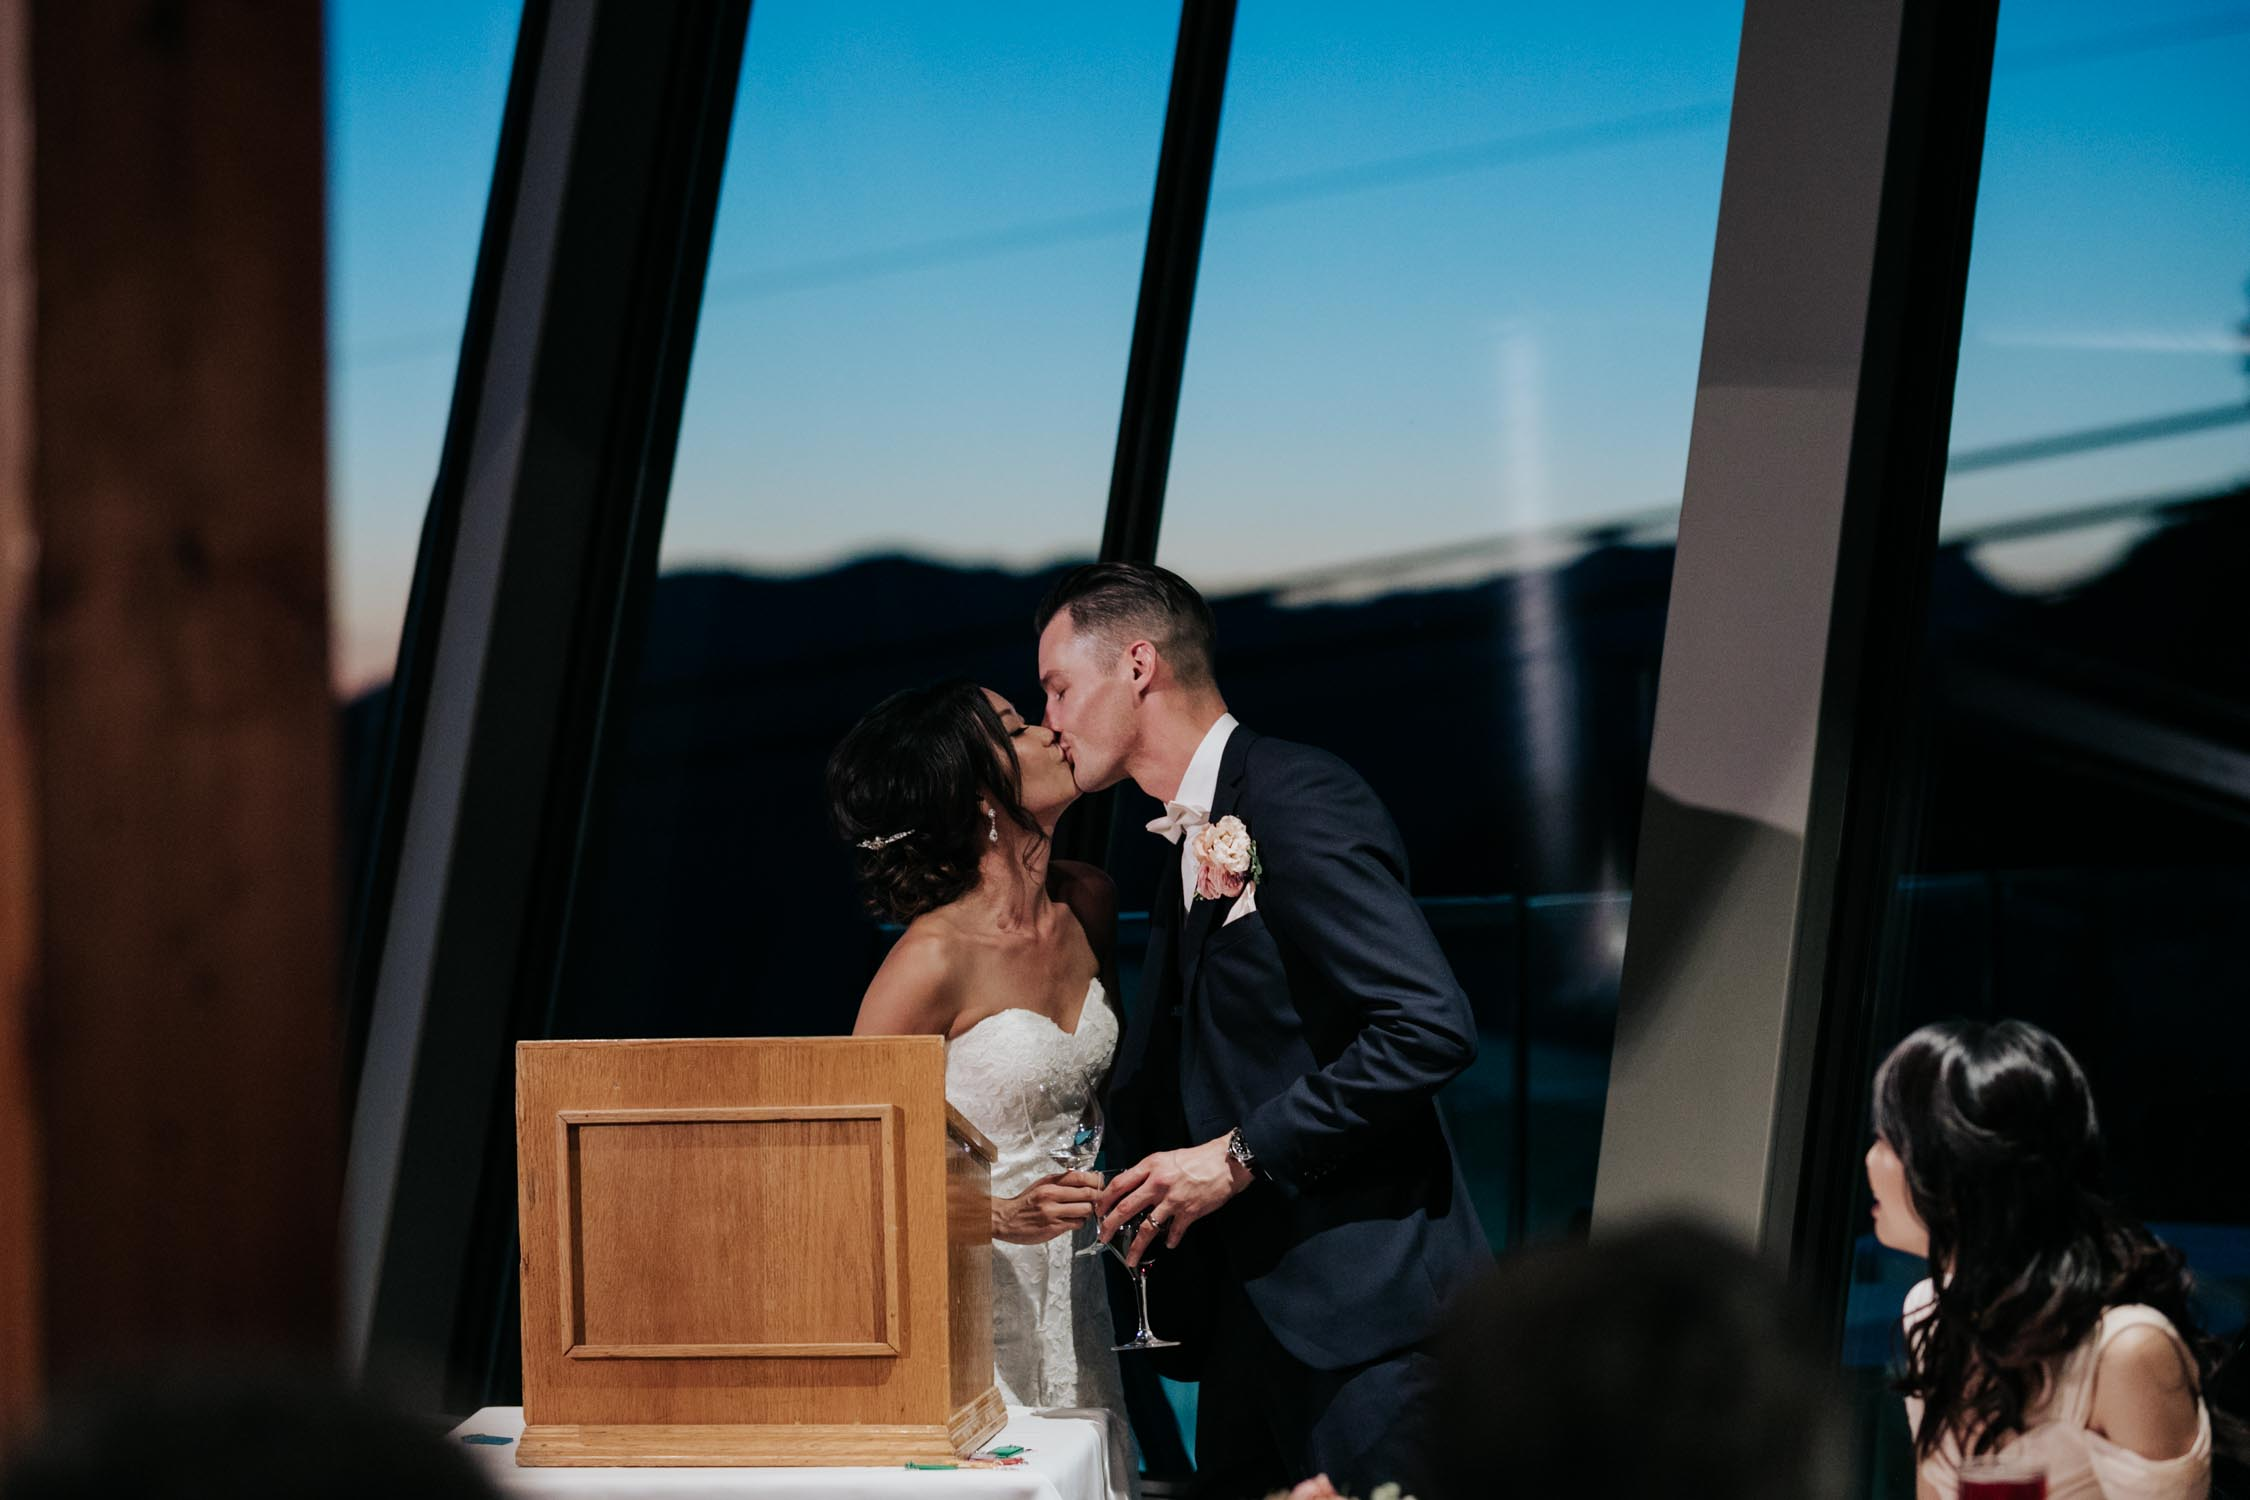 Groom And Bride Speech Together Tears Emotional Real Kiss